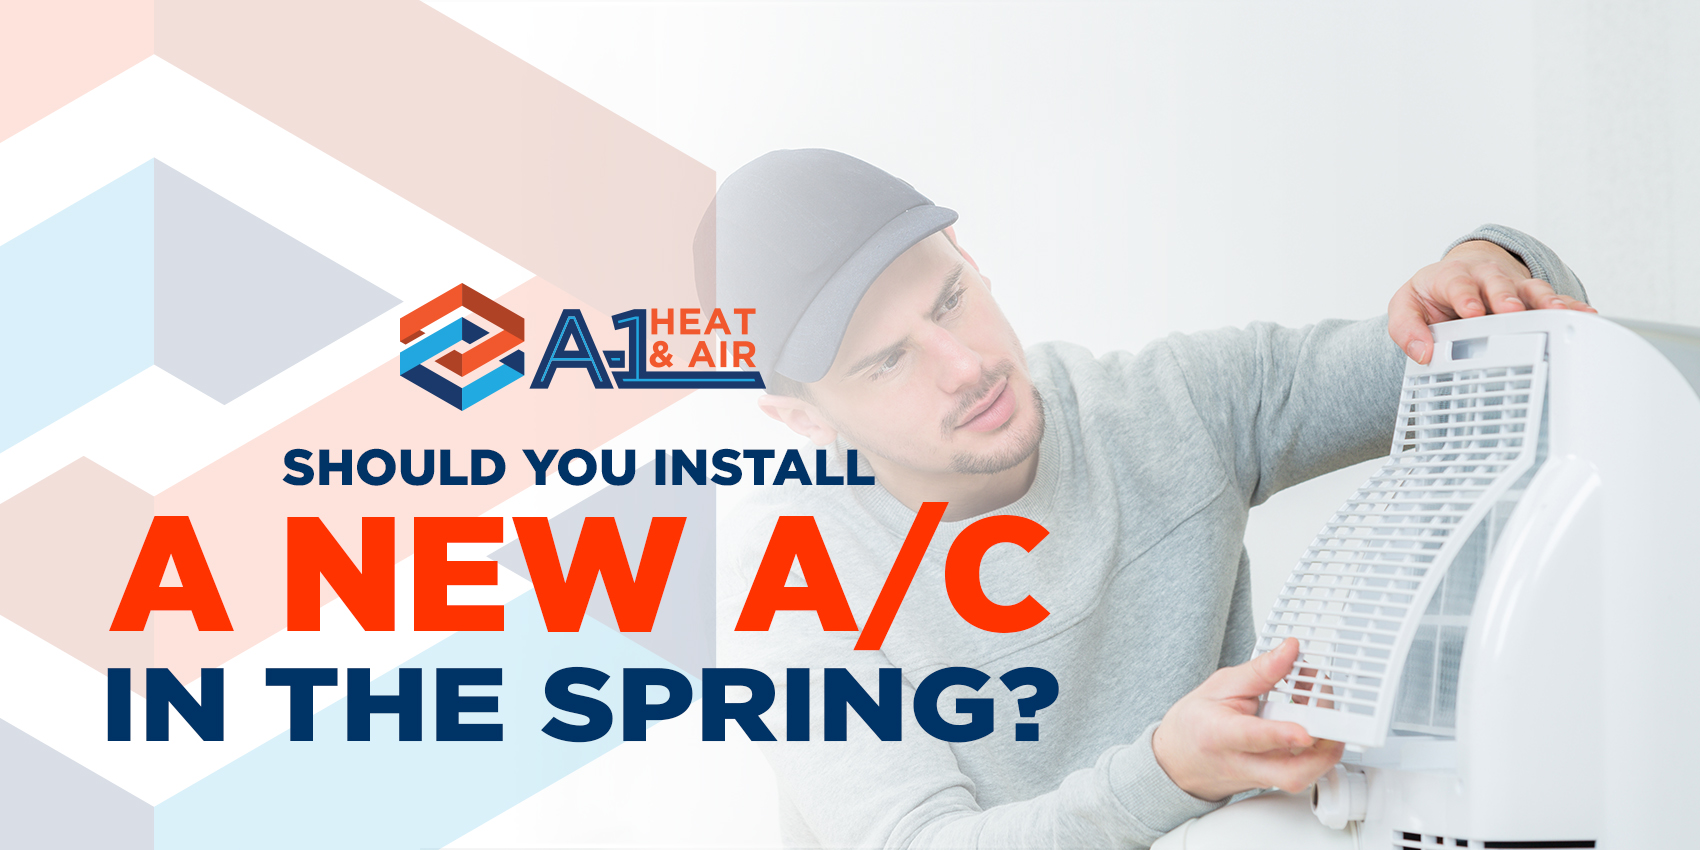 Should You Install A New A/C in the Spring?